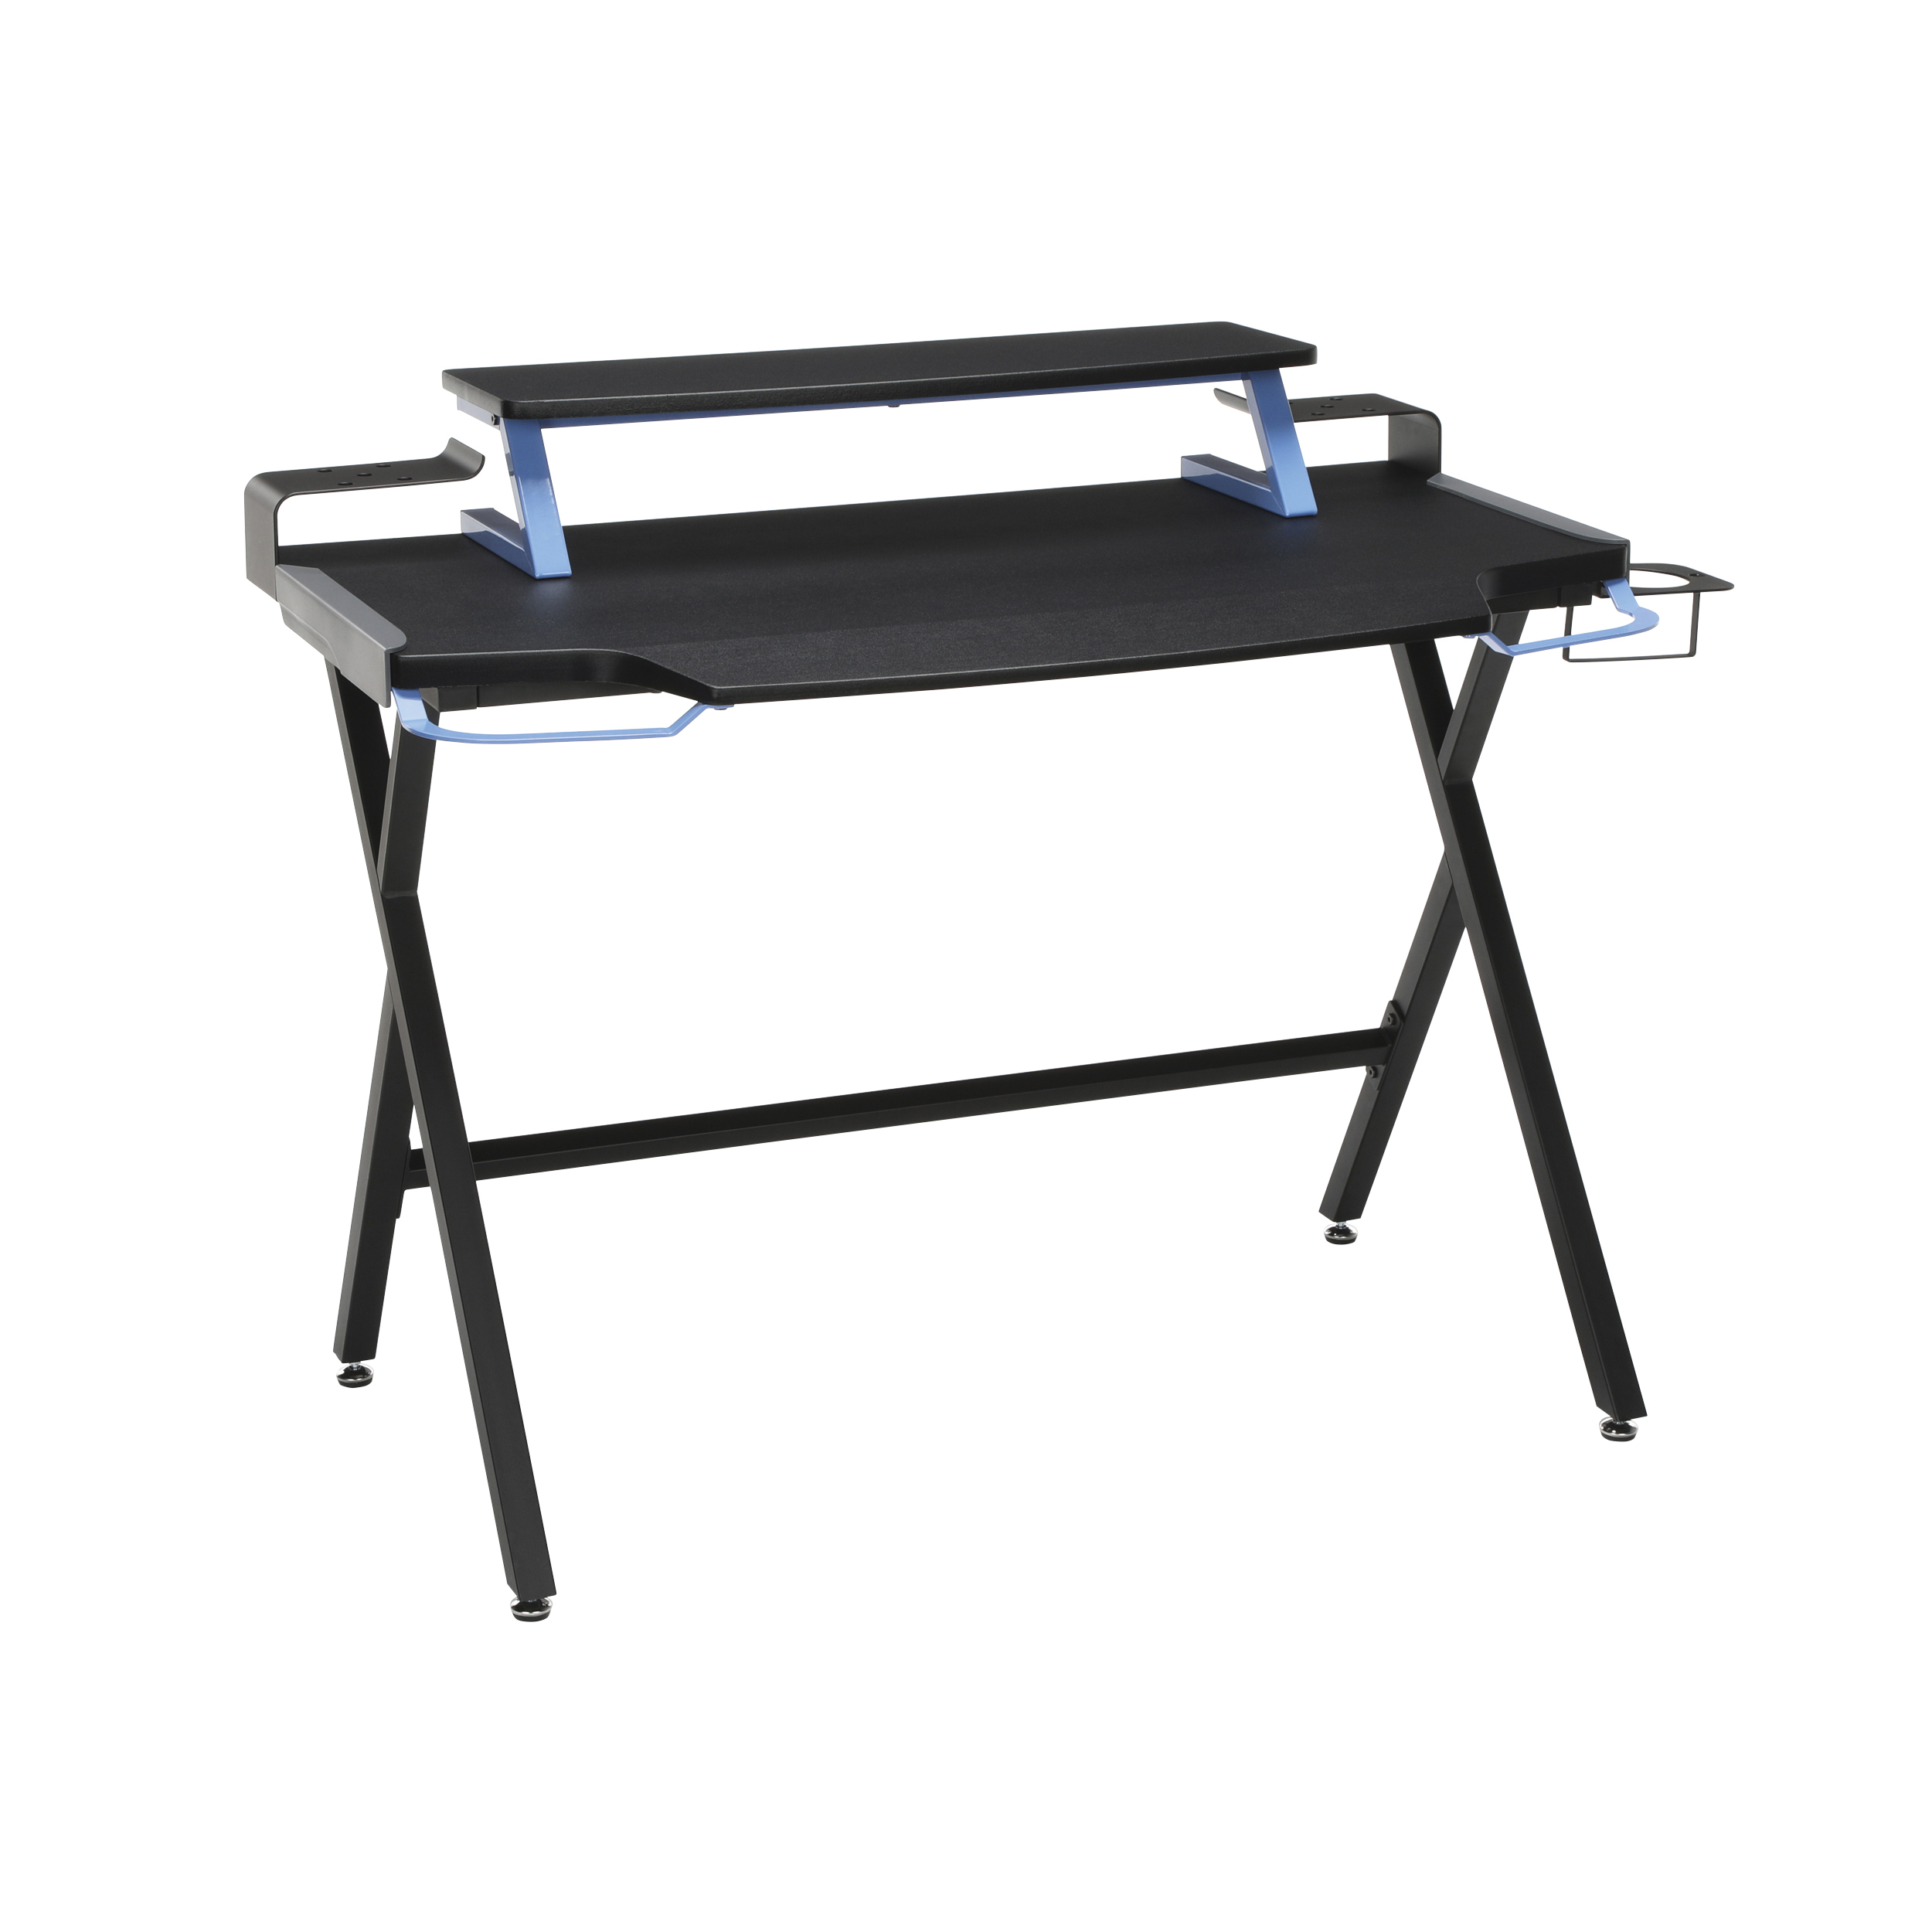 RESPAWN 1000 Gaming Computer Desk, in Blue (RSP-1000-BLU)